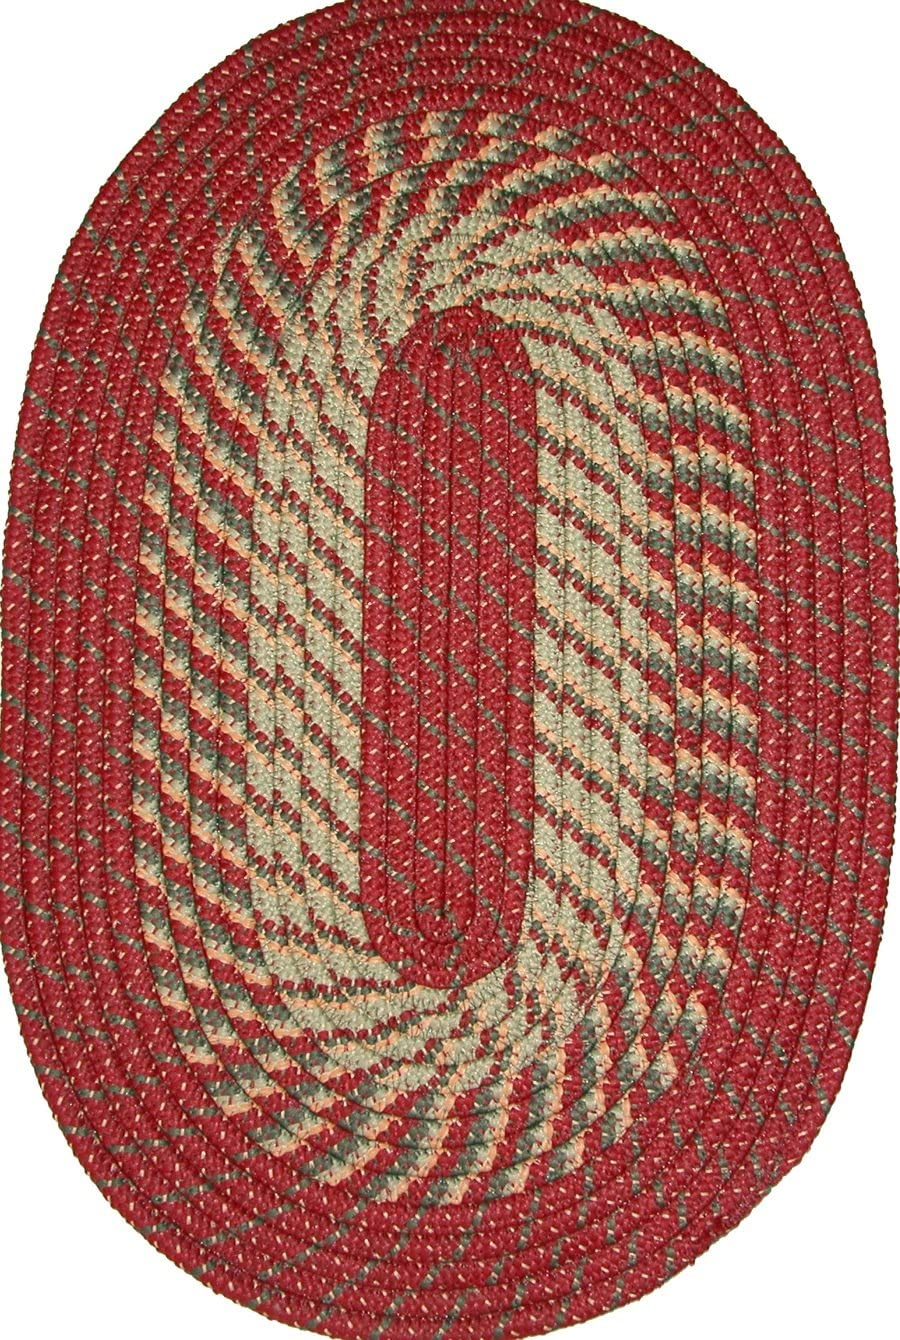 Plymouth 6 ROUND Braided Rug in Barn Red